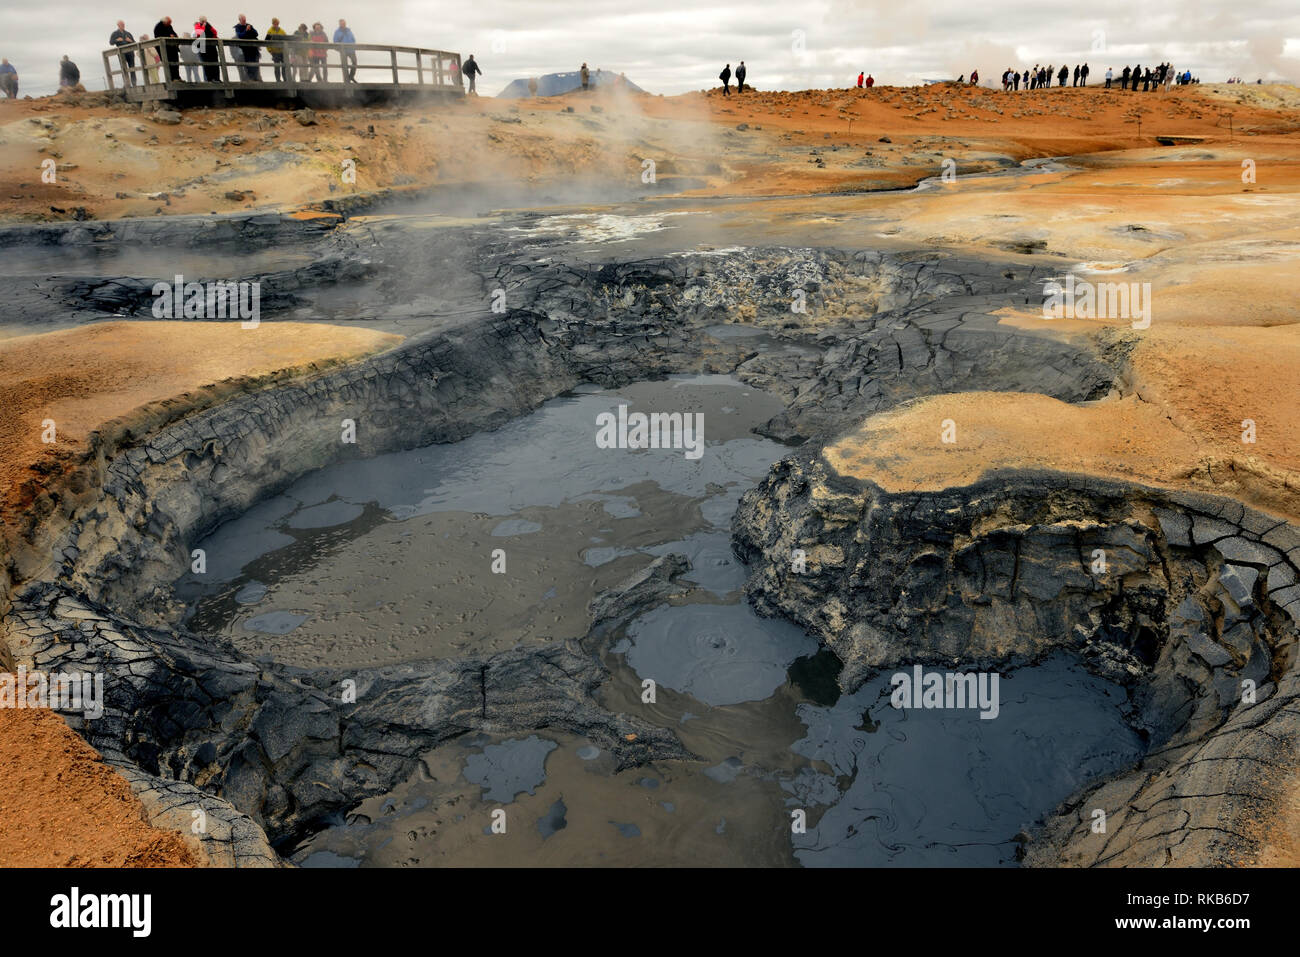 Boiling mud pots at Namafjall, a popular tourist spot in Iceland. - Stock Image